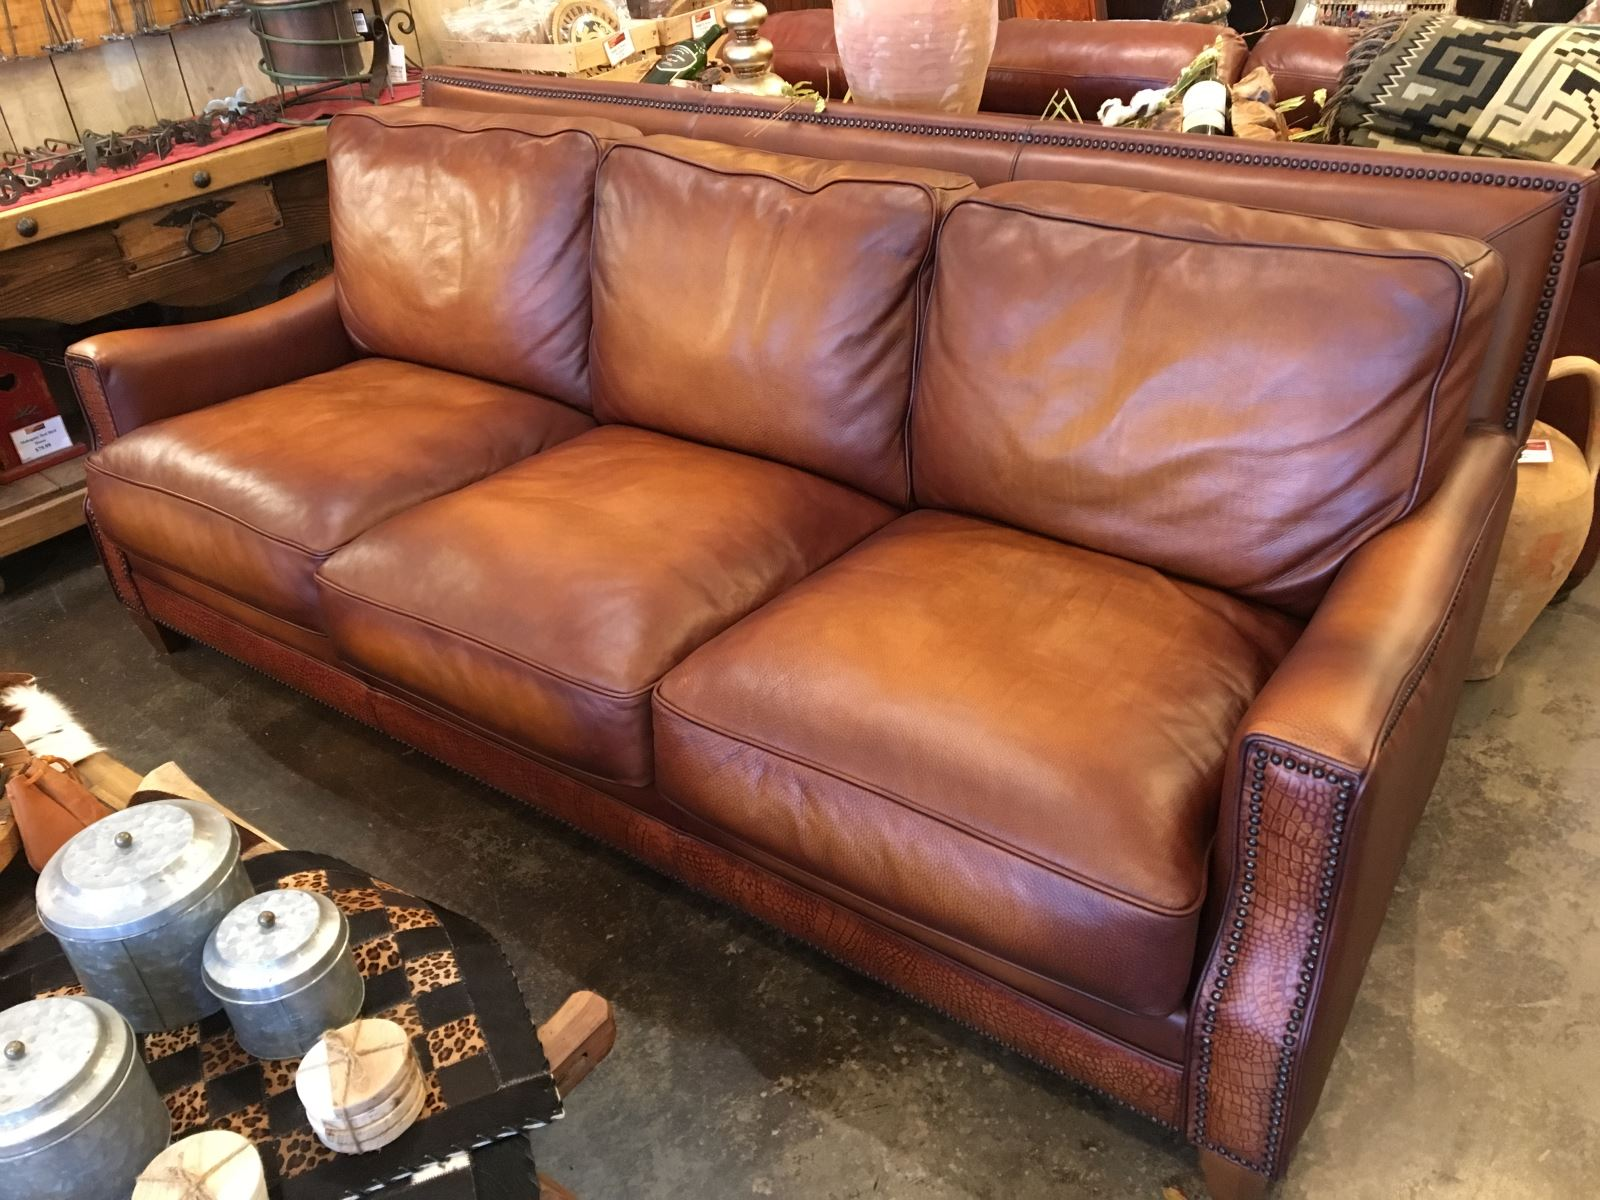 Awesome Fully Custom 100 Top Grain Leather Sofa In Cognac With Croc Gamerscity Chair Design For Home Gamerscityorg